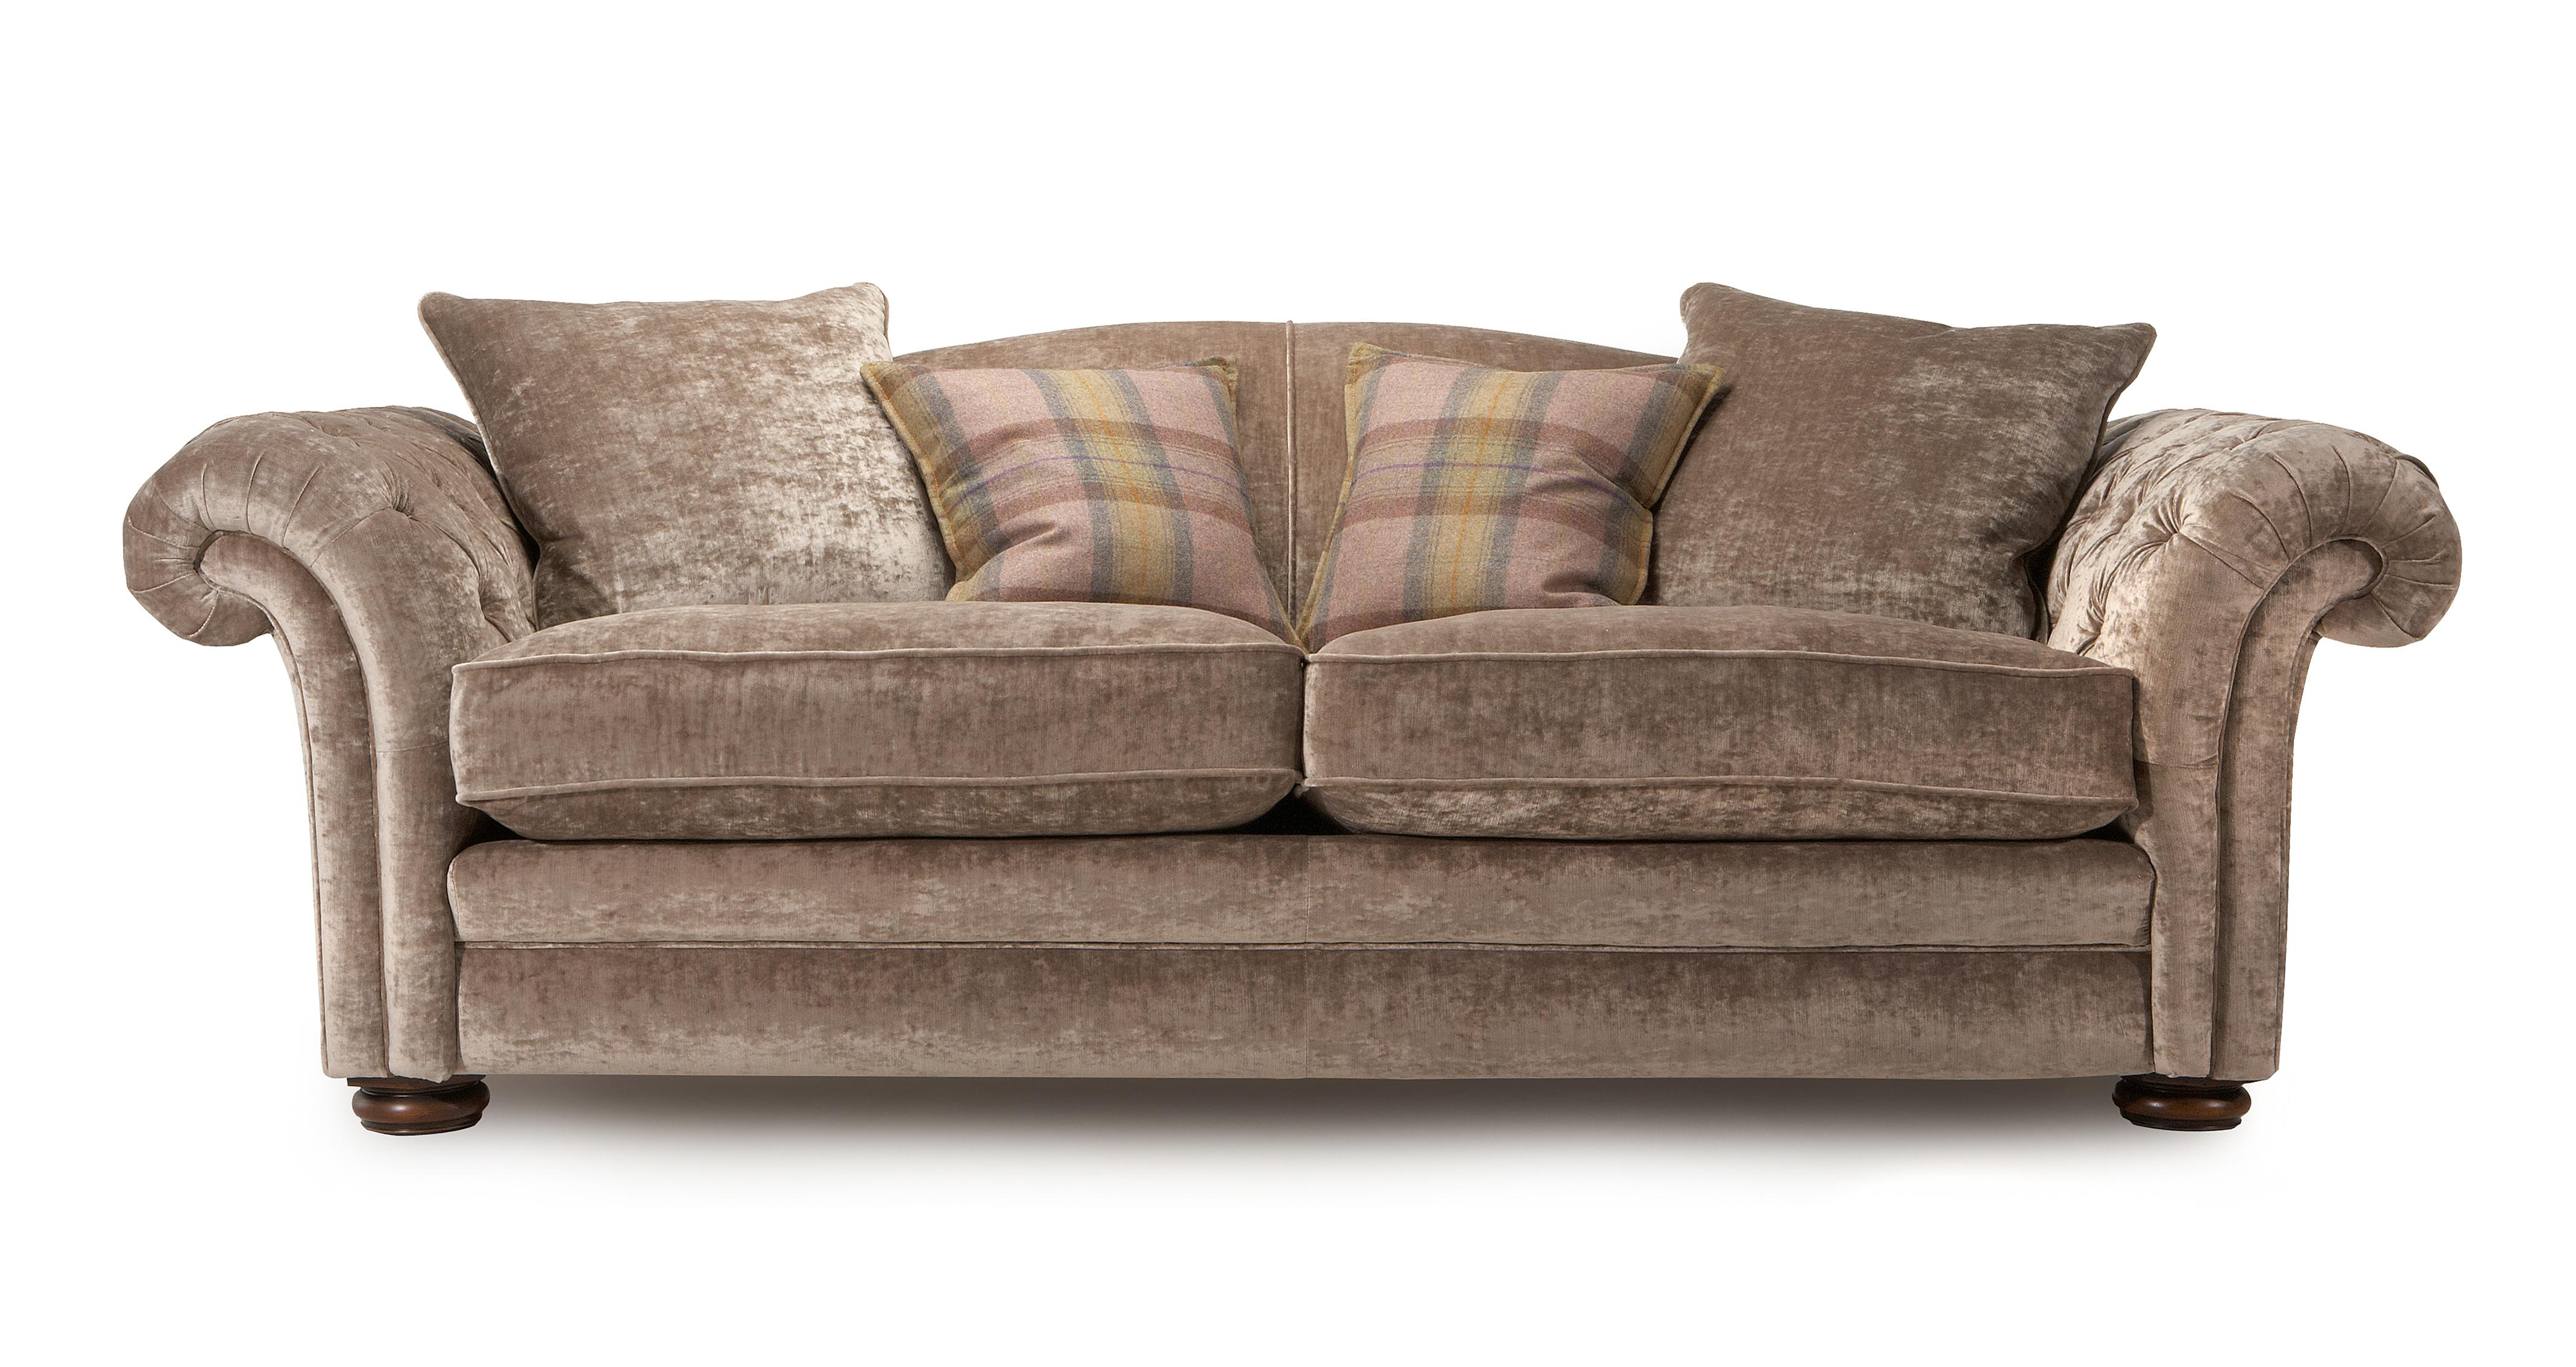 Loch Leven Grand Pillow Back Sofa Dfs